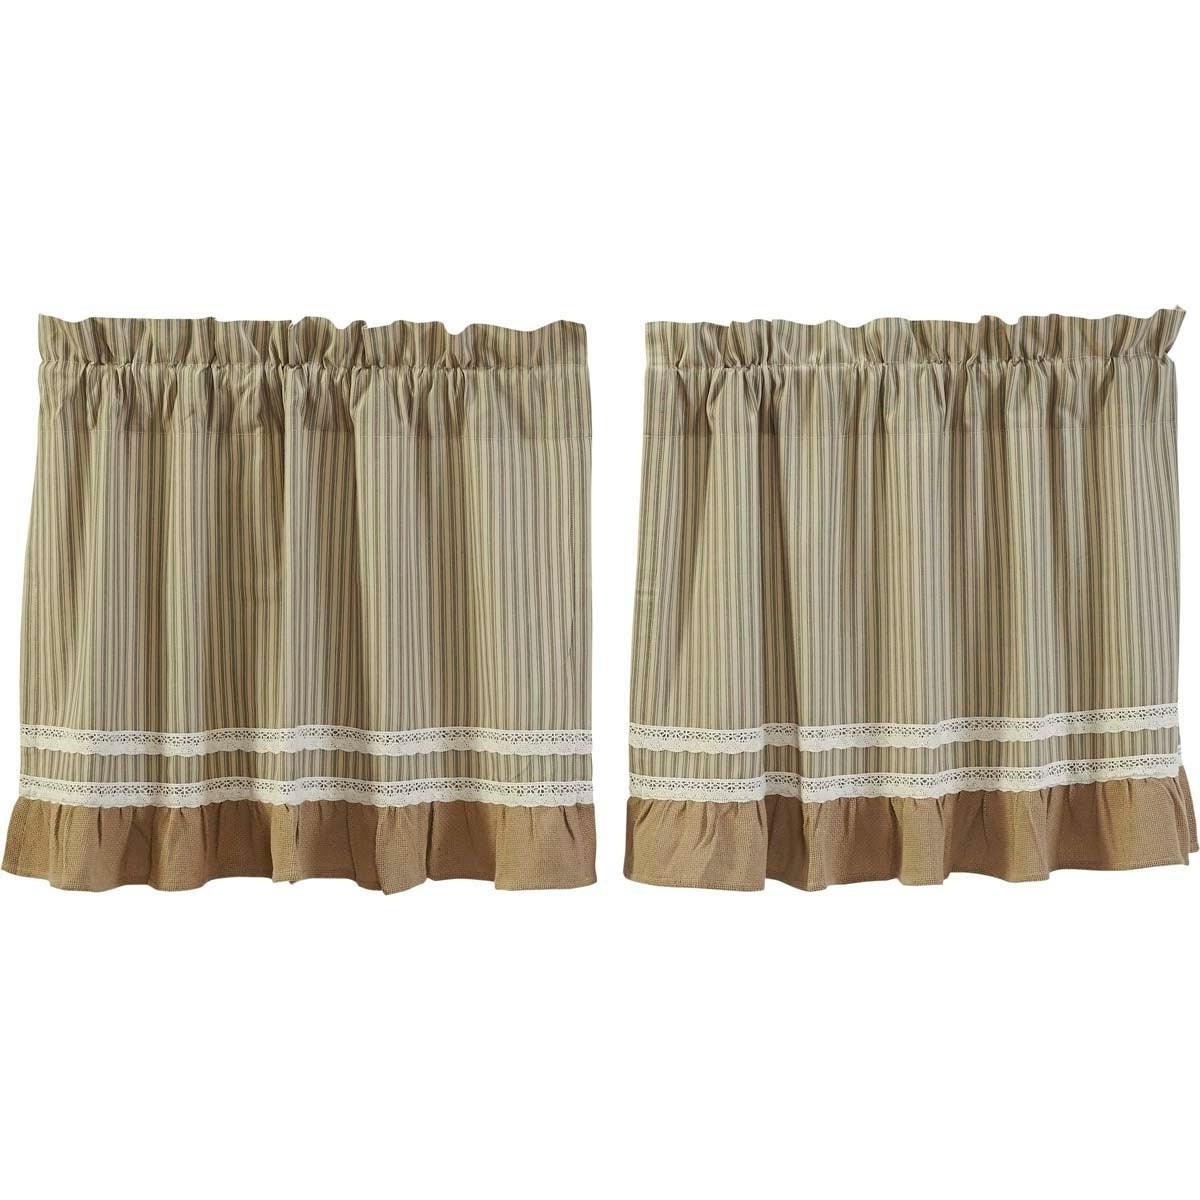 Farmhouse Kitchen Curtains Vhc Kendra Stripe Tier Pair Rod Pocket Cotton Striped Lace Cotton Burlap With Regard To Famous Rod Pocket Cotton Striped Lace Cotton Burlap Kitchen Curtains (View 5 of 20)